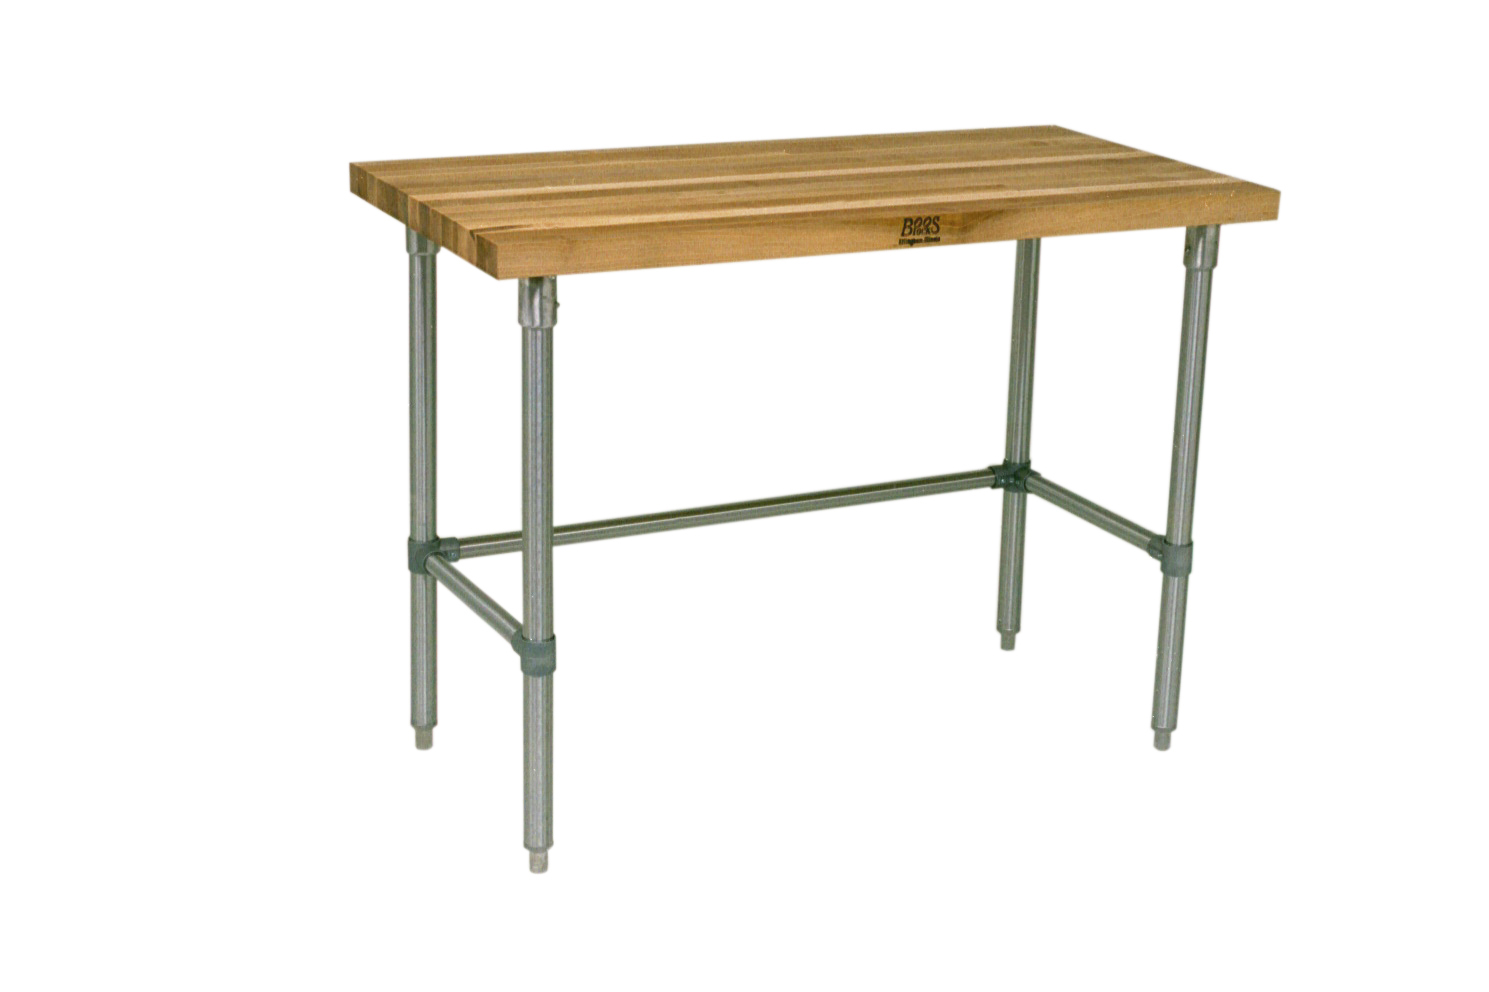 John Boos Thick Maple Top Work Table on Adjustable Galvanized Base, 60 x 30 Inch